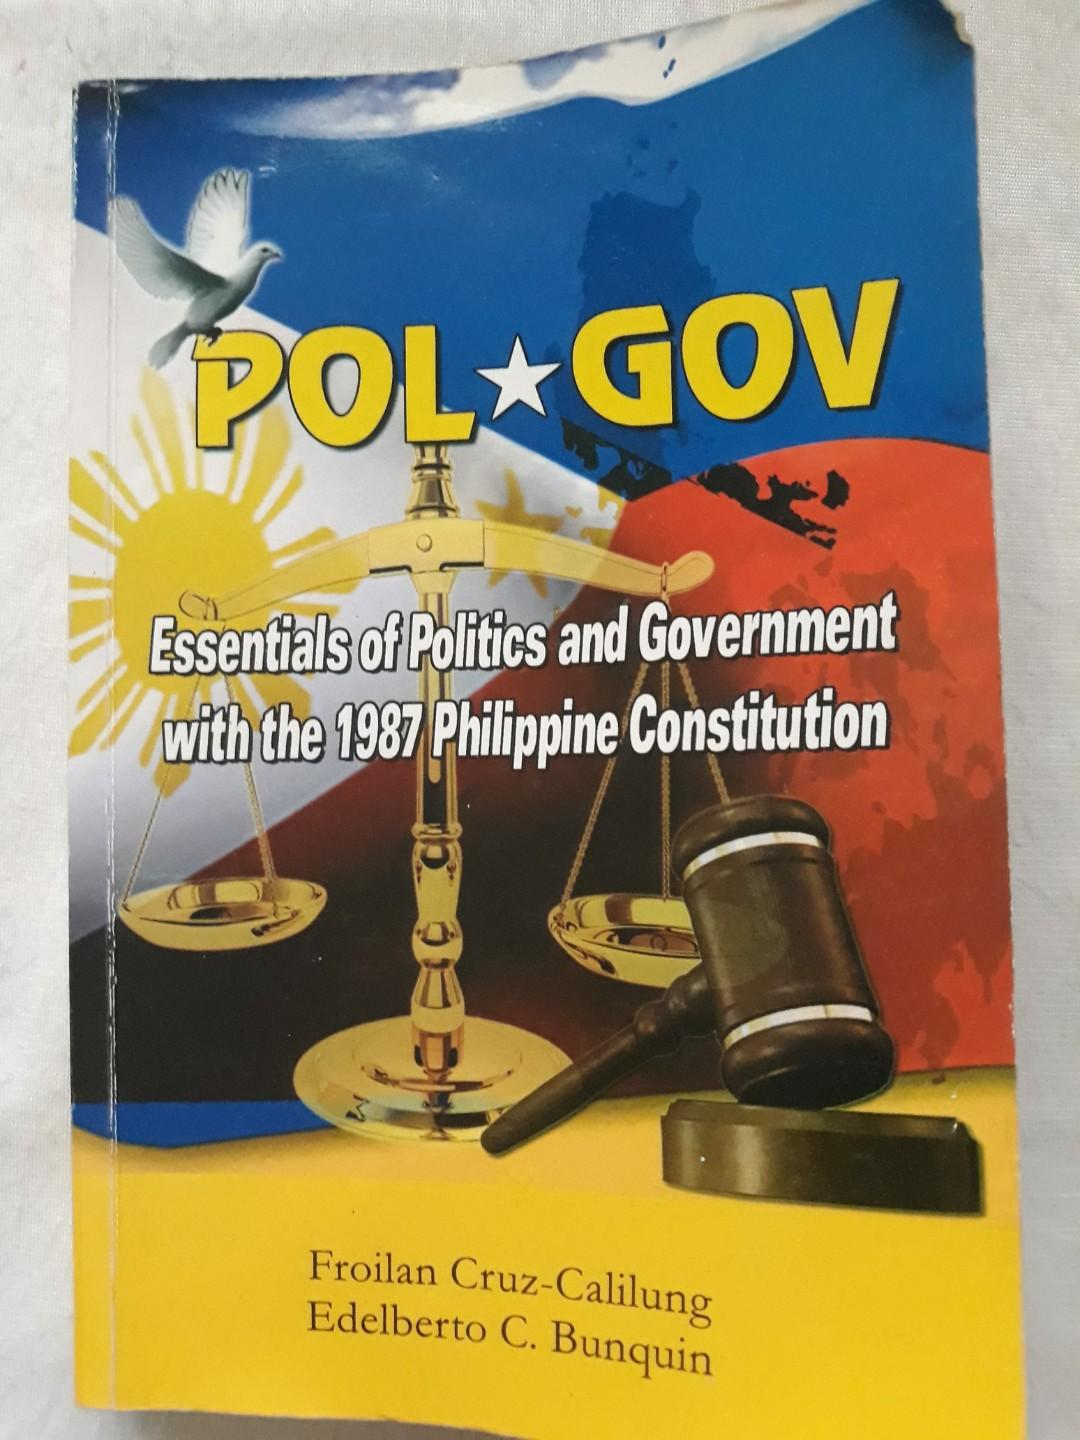 POL GOV Essentials of Politics and Government with the 1987 Philippine Constitution